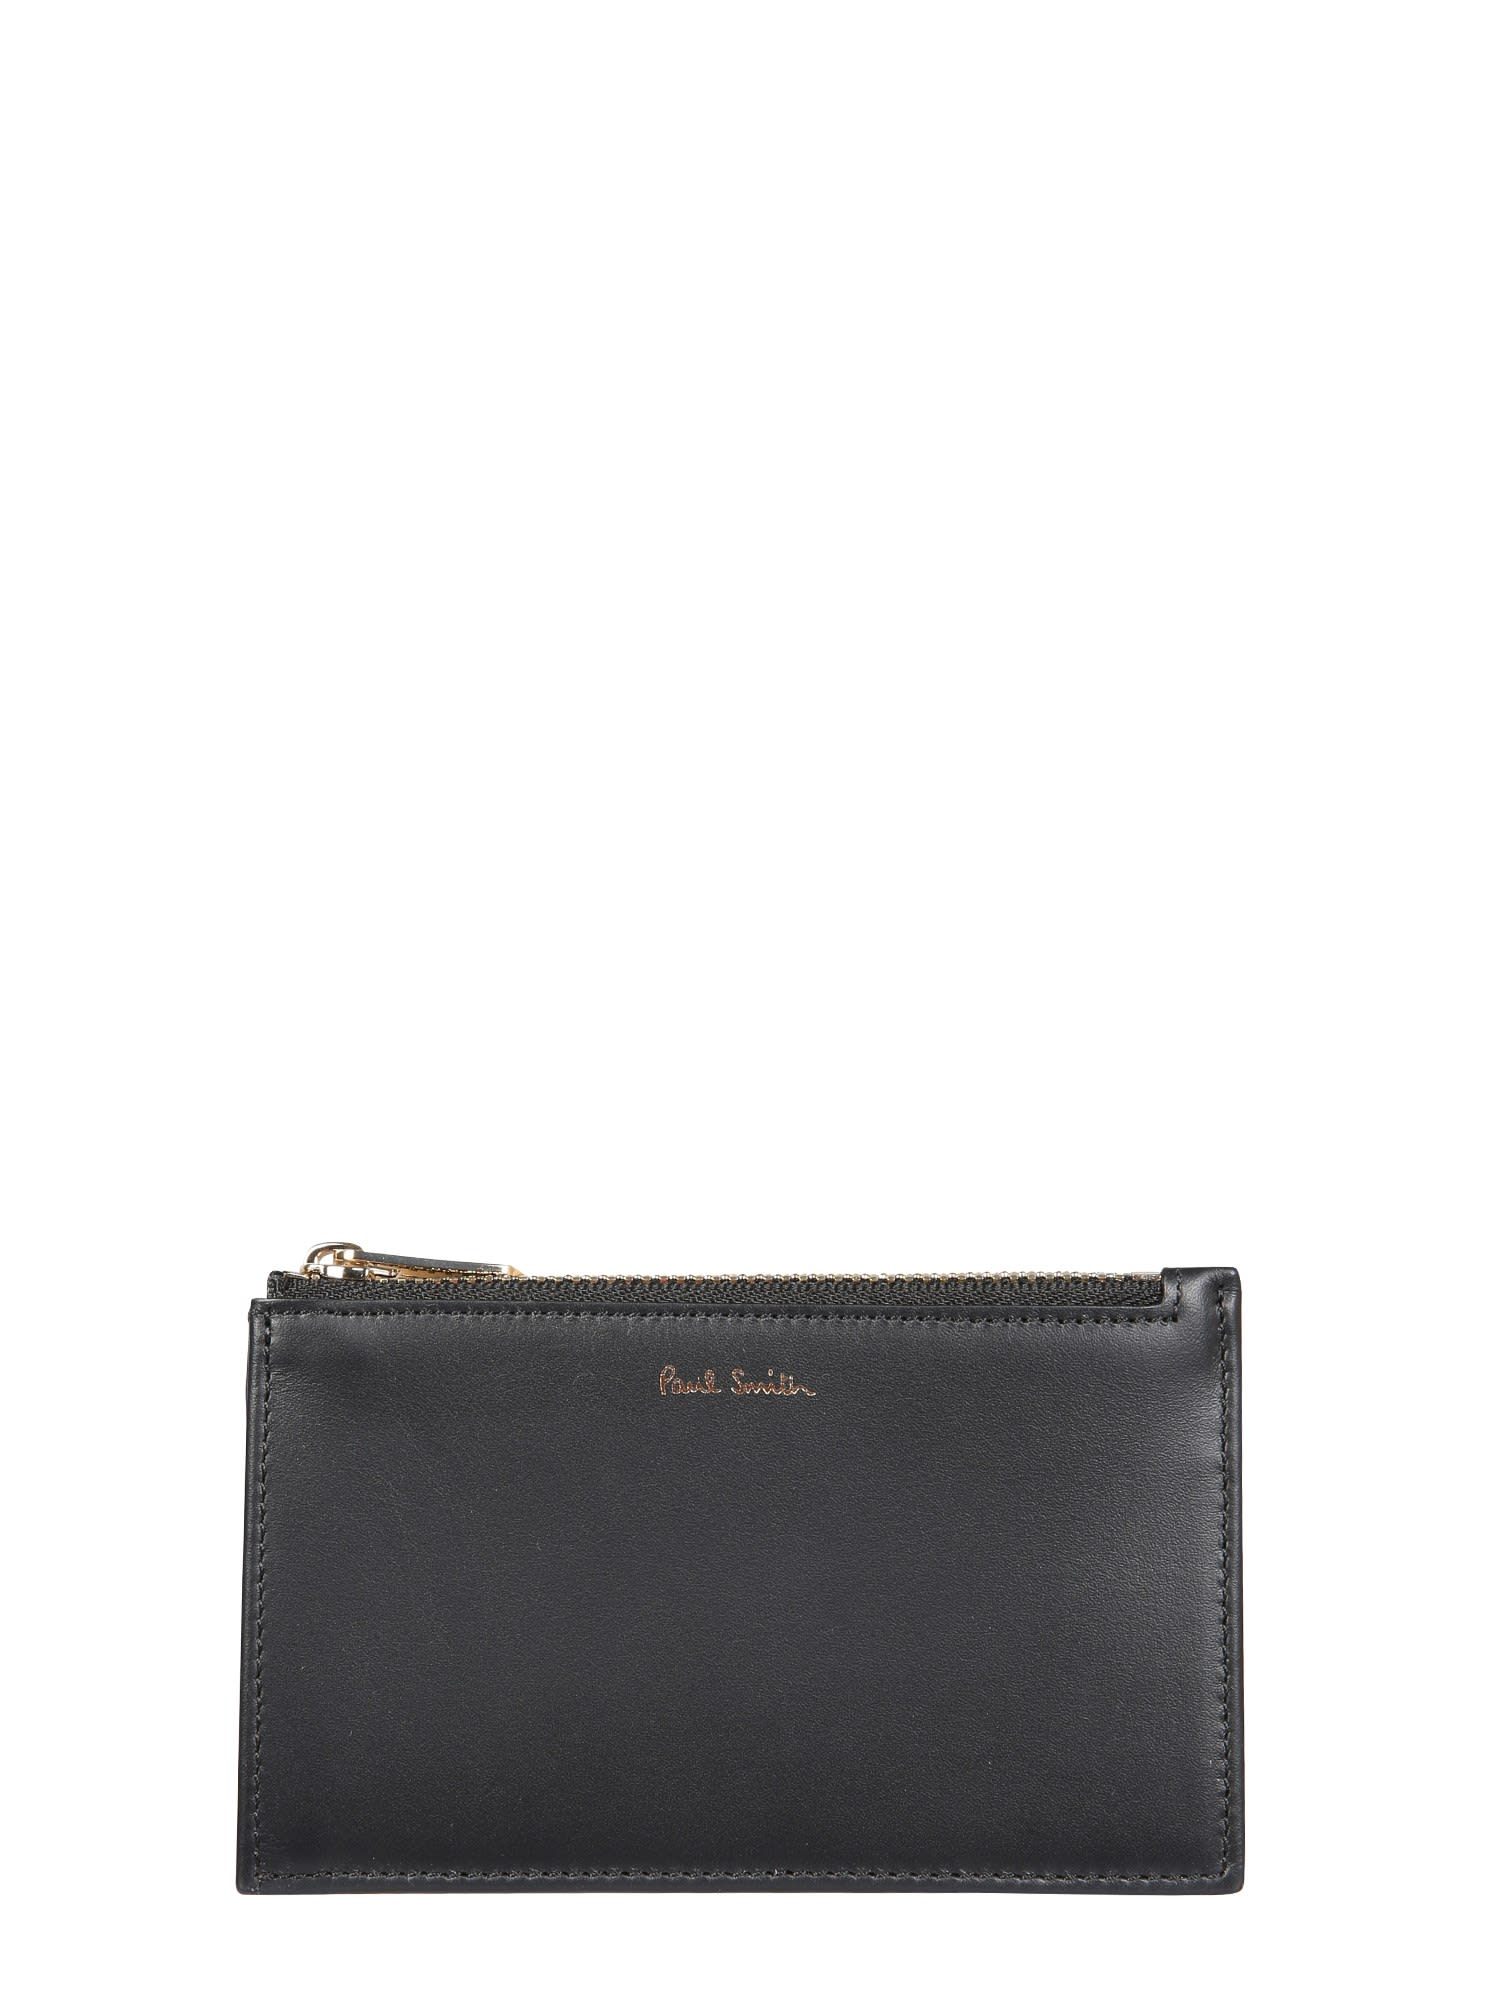 PAUL SMITH CARD HOLDER WITH ZIP